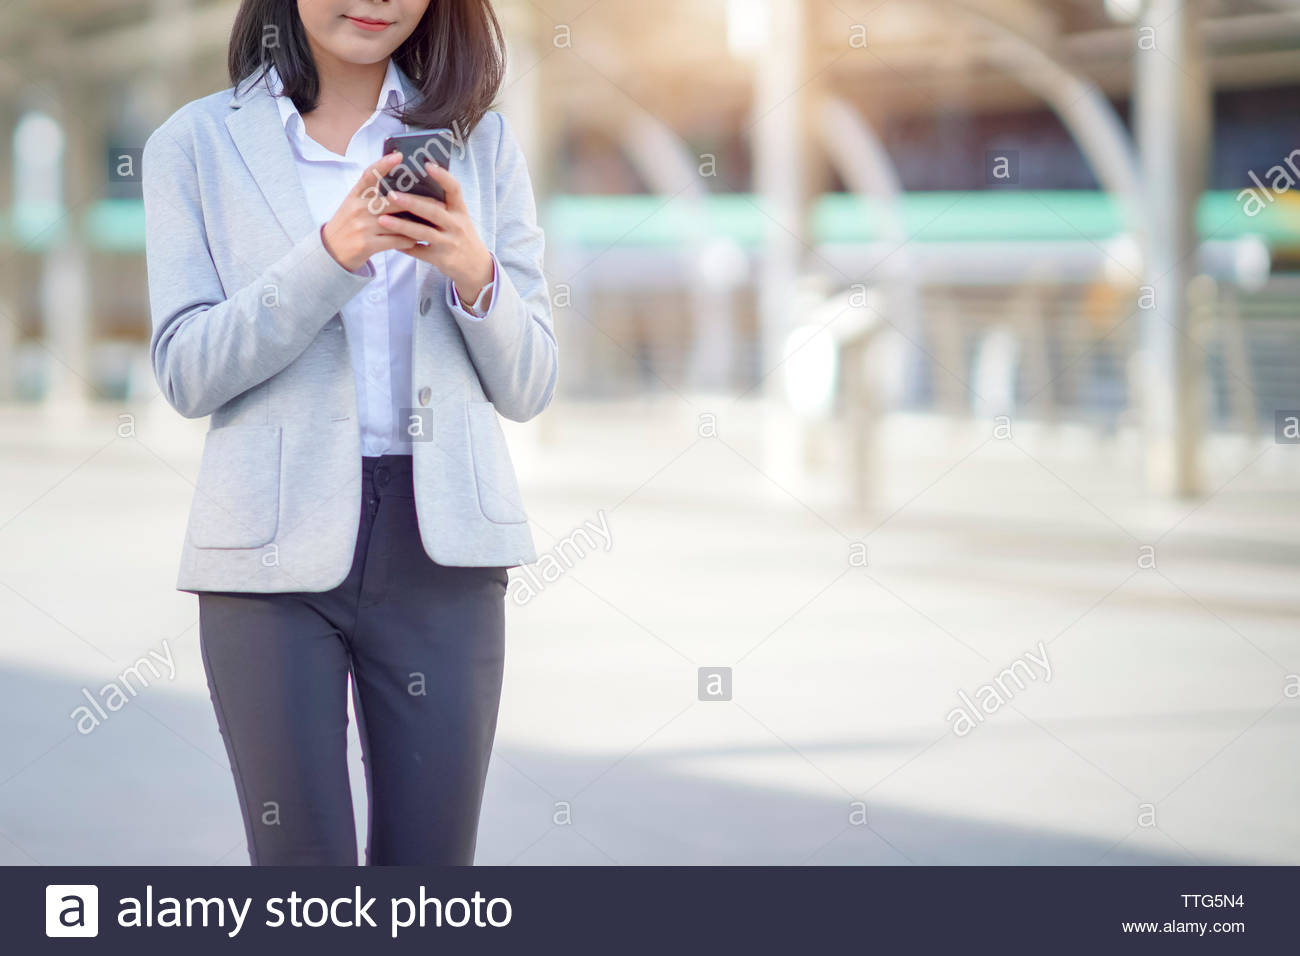 businesswoman reading email on smartphone while working in the city - Stock Image